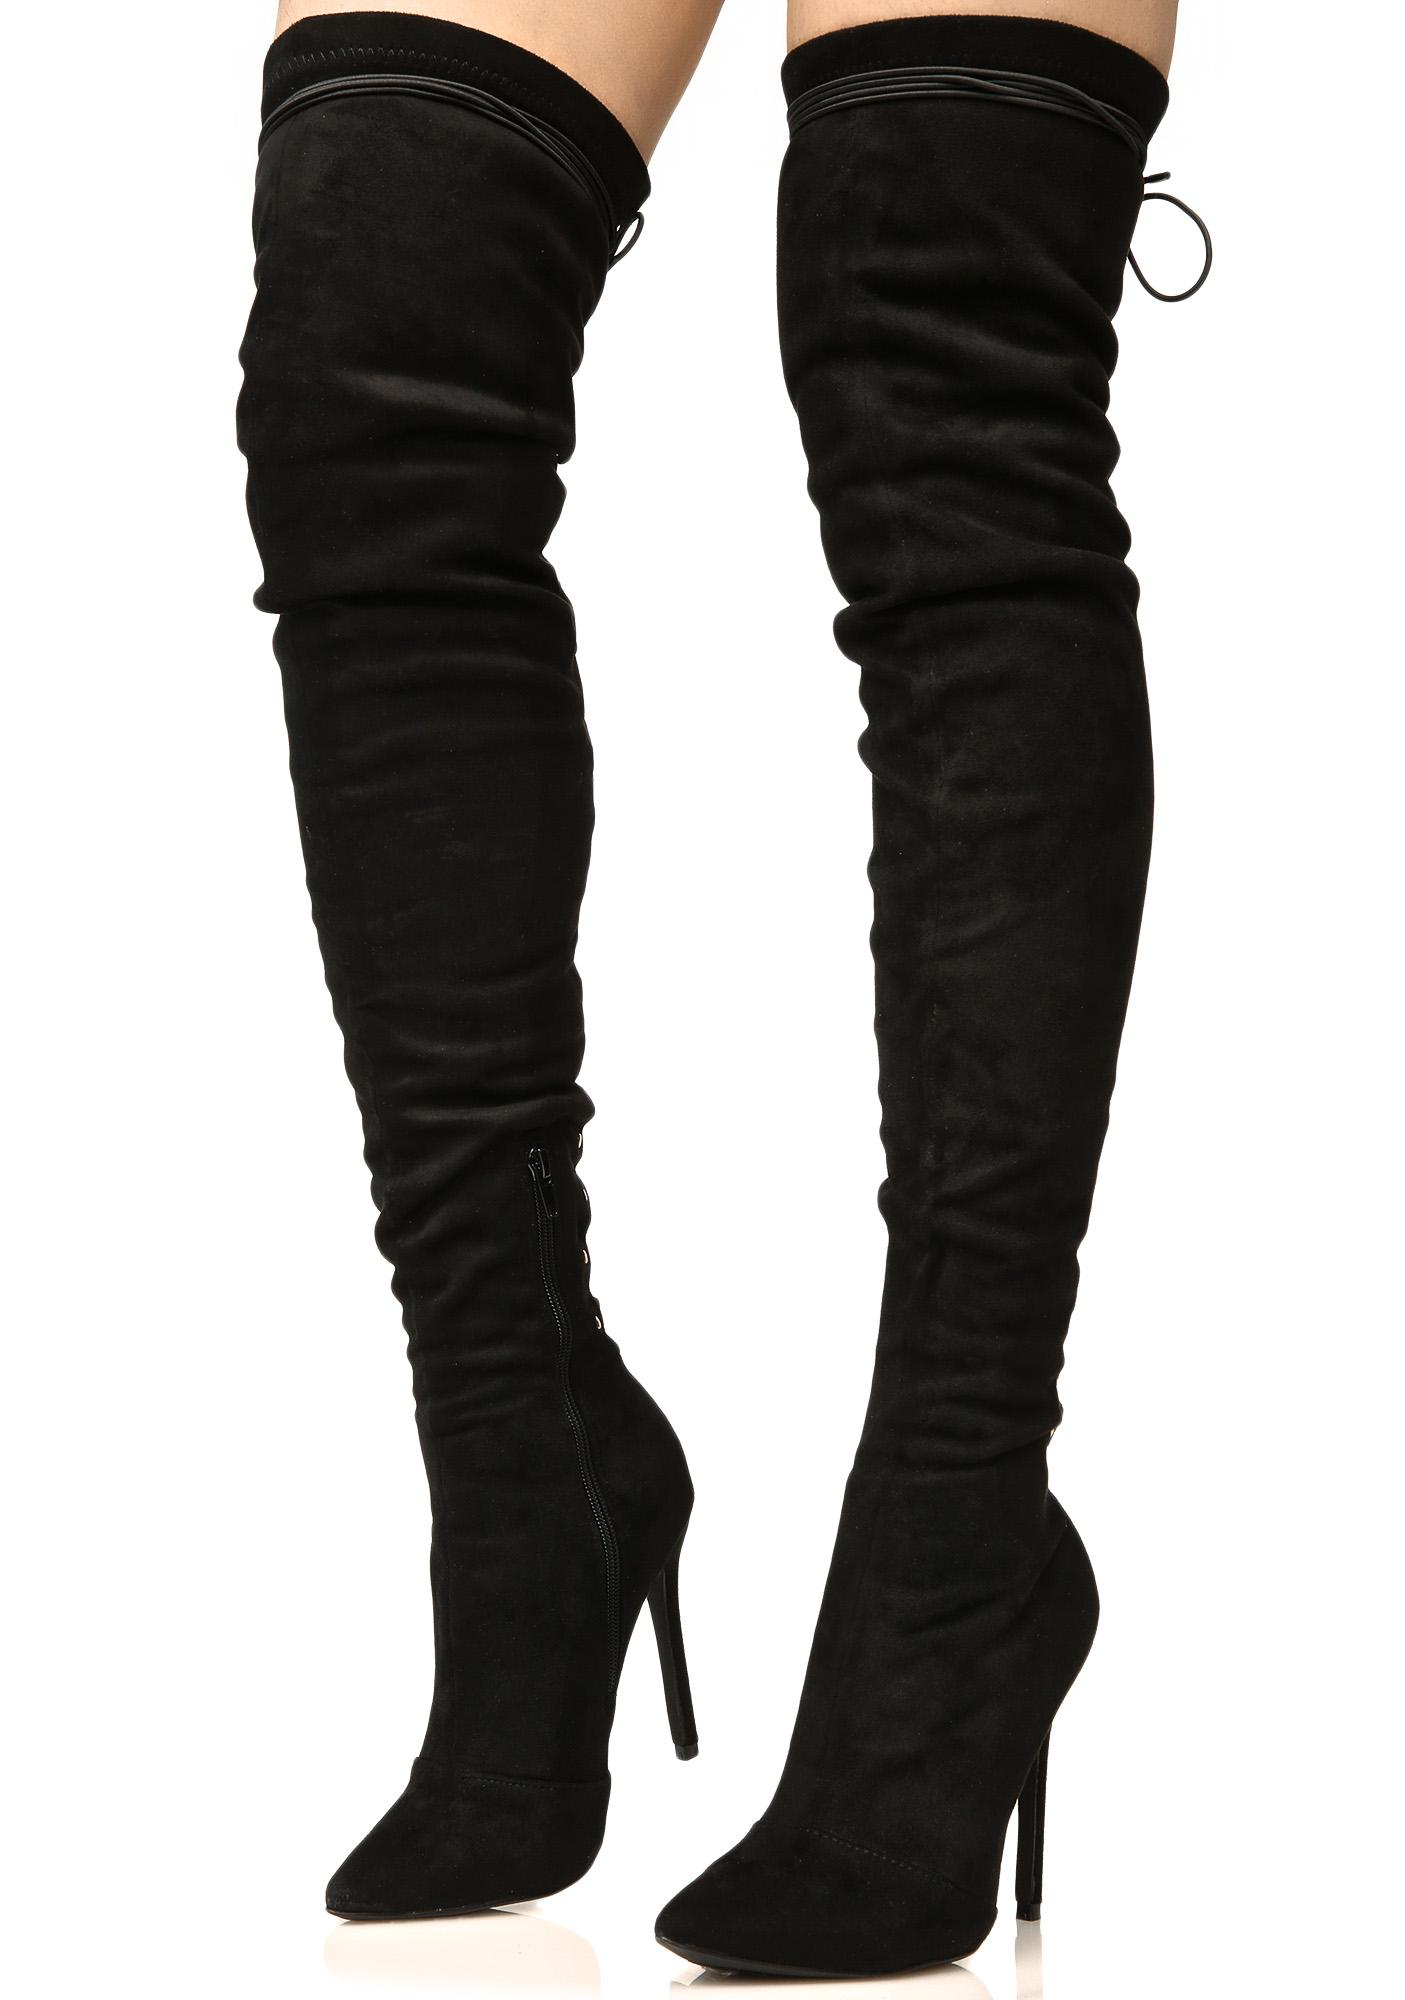 Give Me Fever Lace-Up Thigh-High Boots